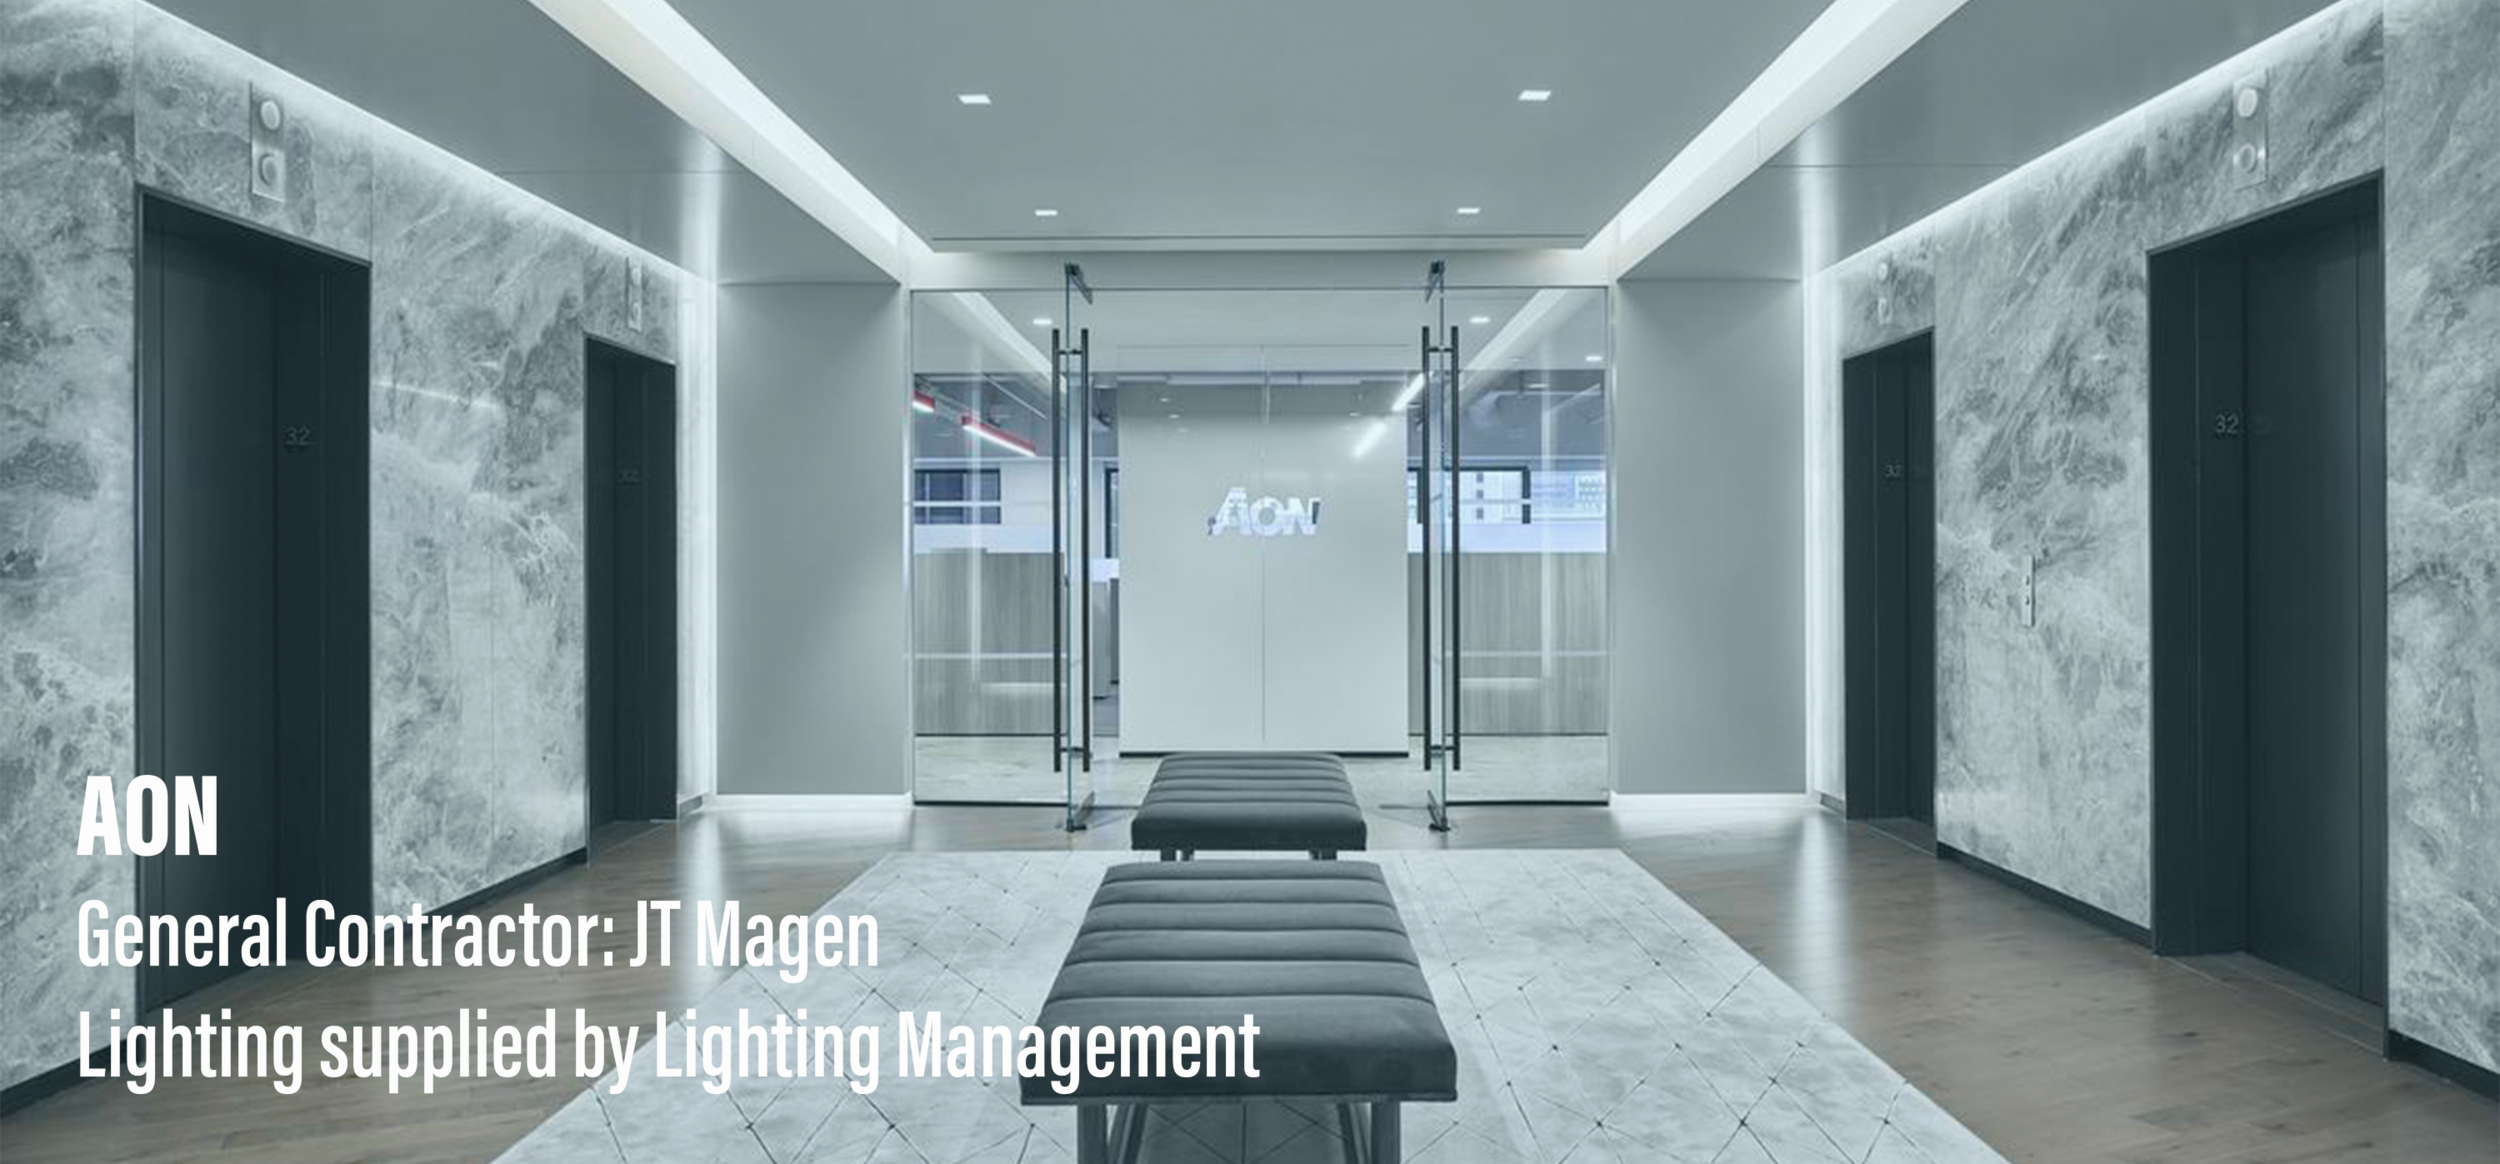 PROJECT: AON, GENERAL CONTRACTOR: JT MAGEN, LIGHTING SUPPLIED BY LIGHTING MANAGEMENT